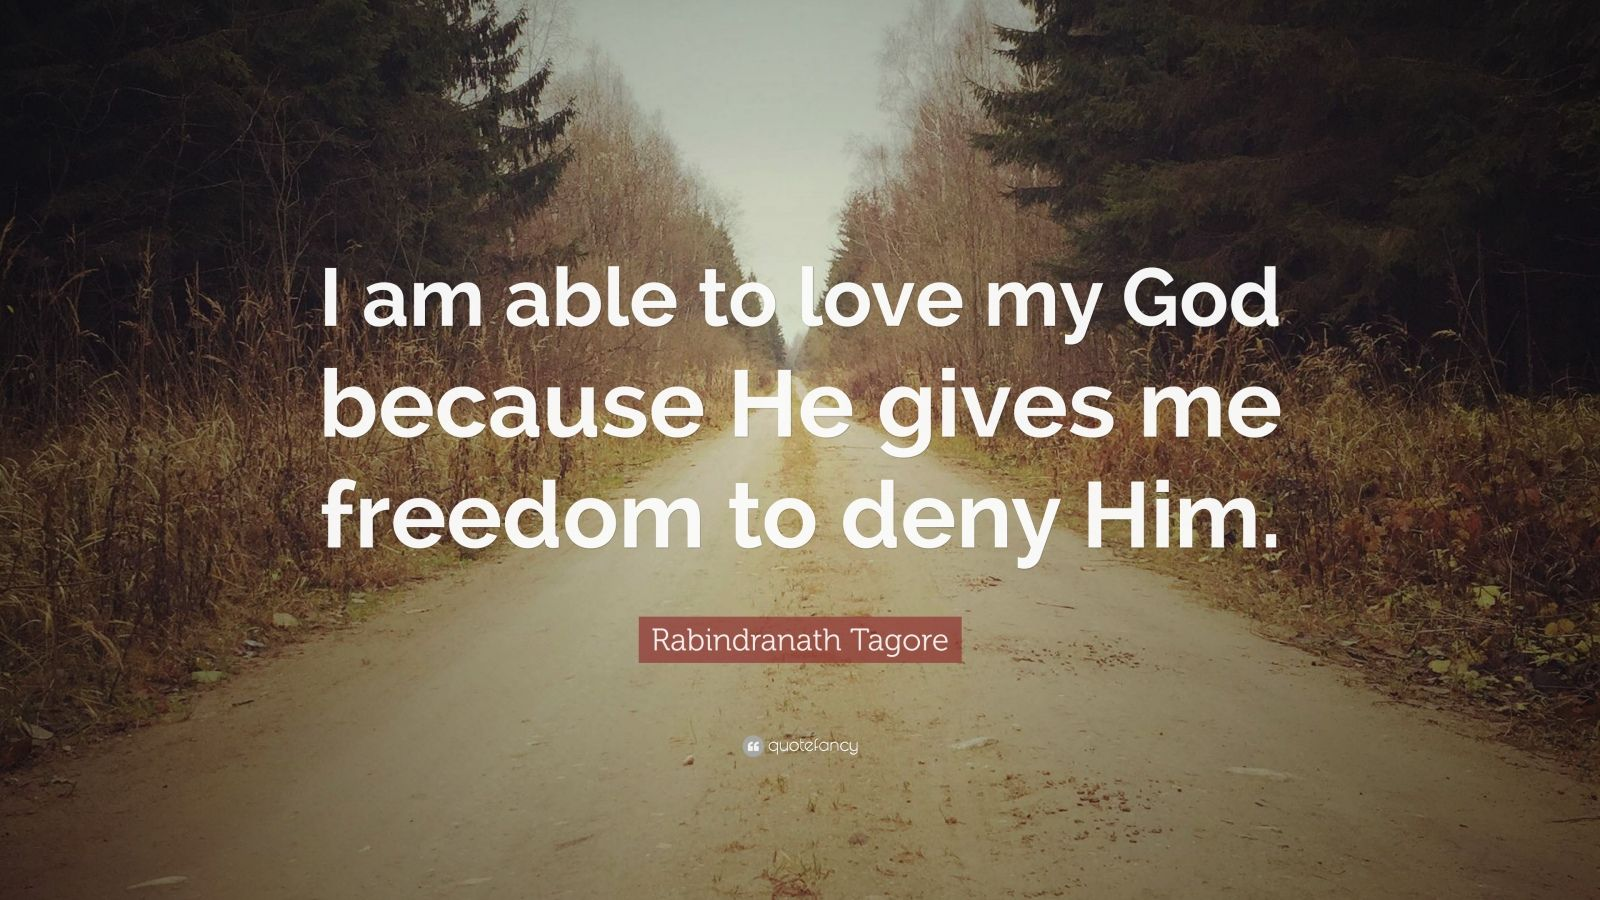 """Rabindranath Tagore Quote: """"I am able to love my God because He gives me freedom to deny Him."""""""